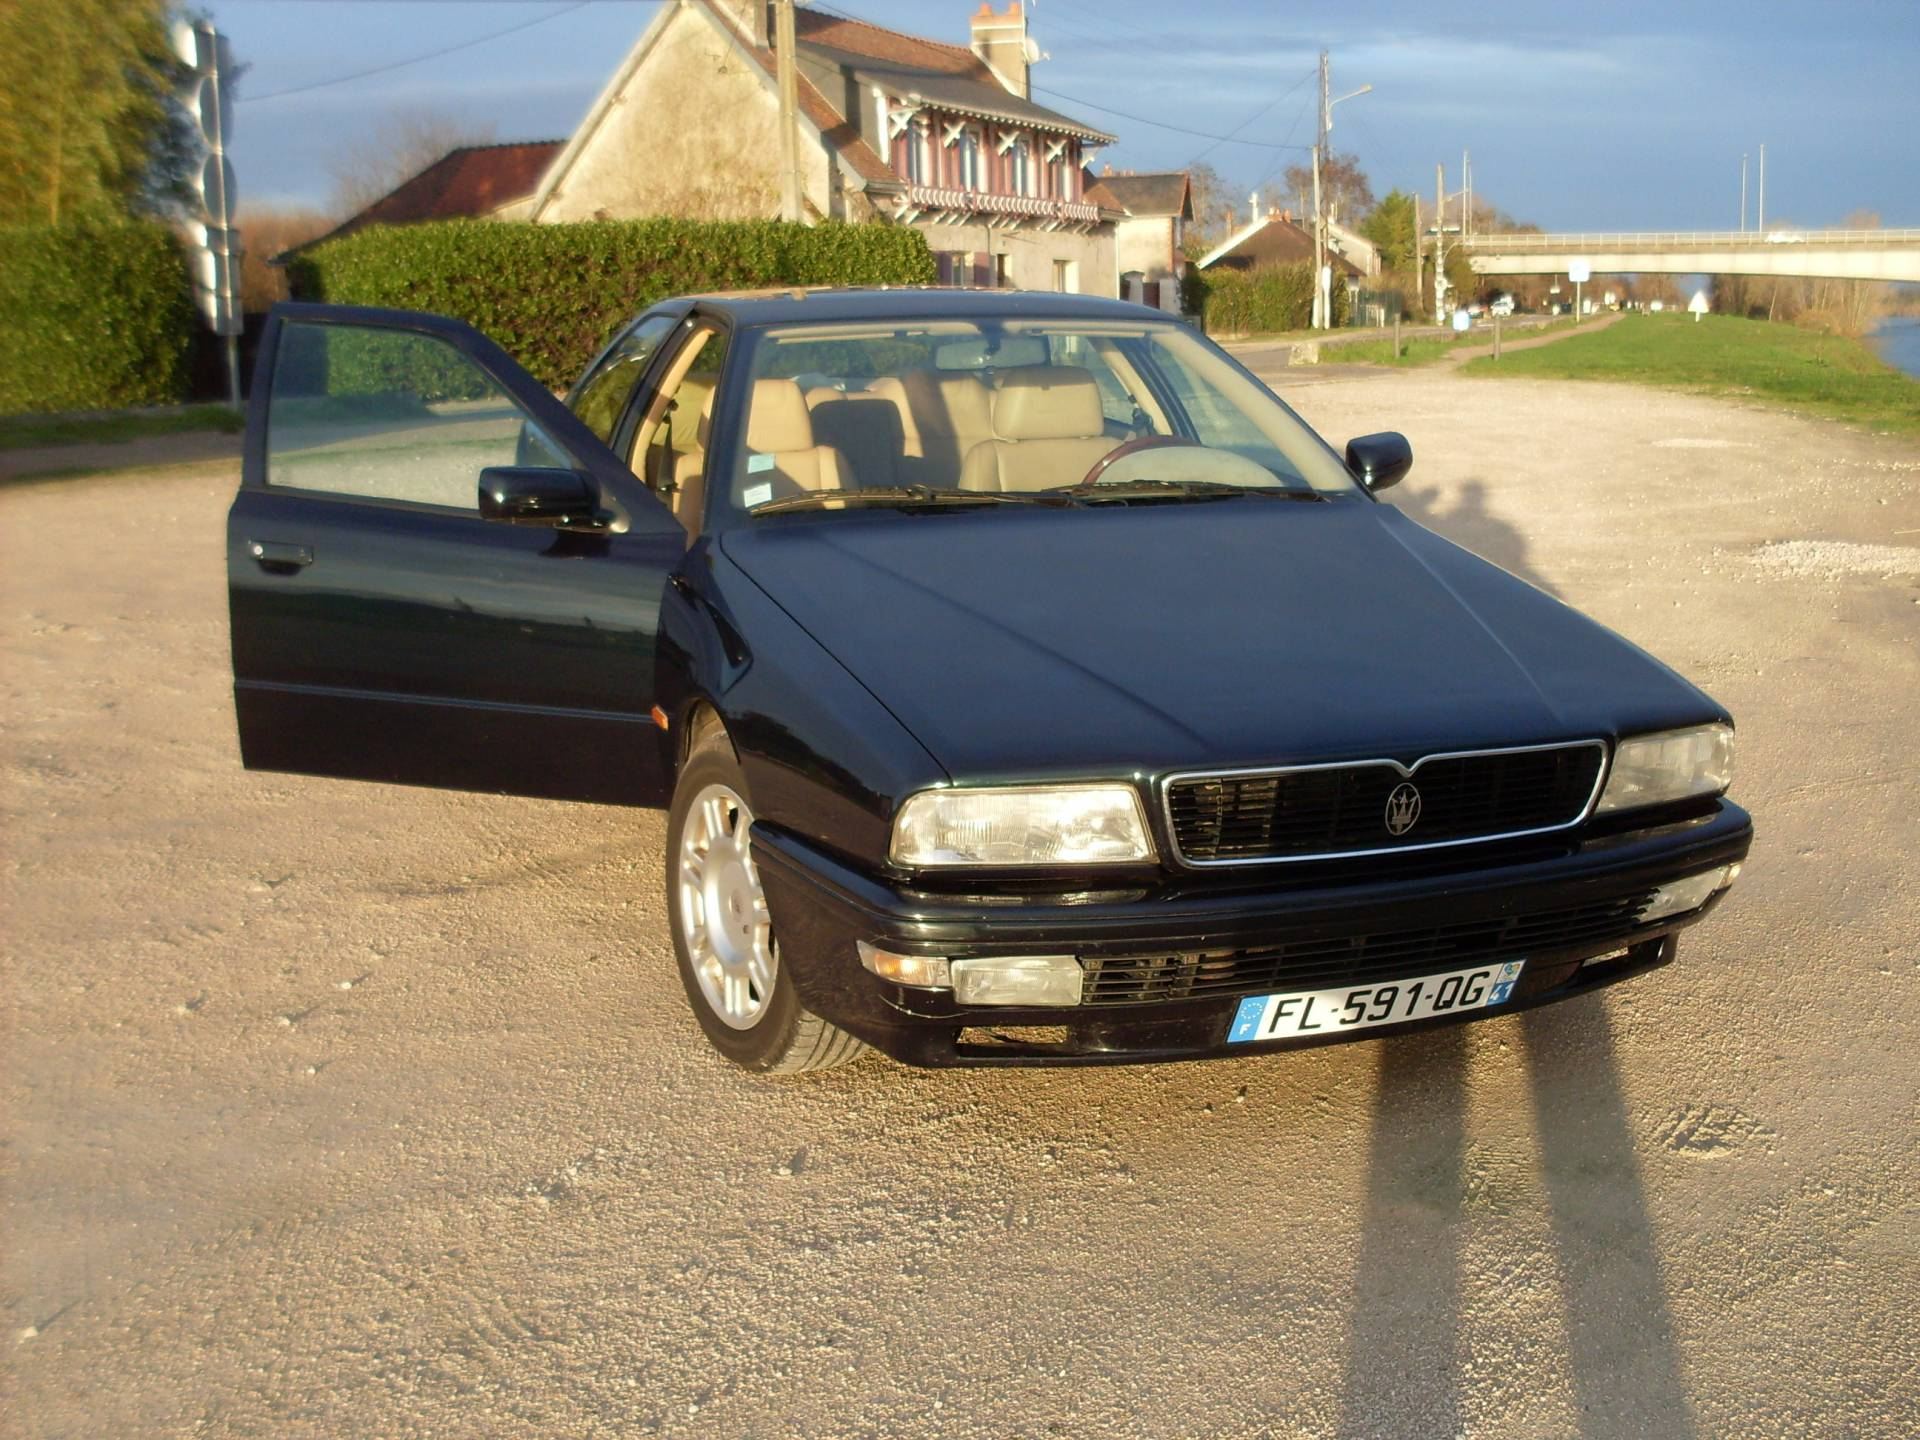 For Sale: Maserati Quattroporte 2.8 (1996) offered for AUD ...